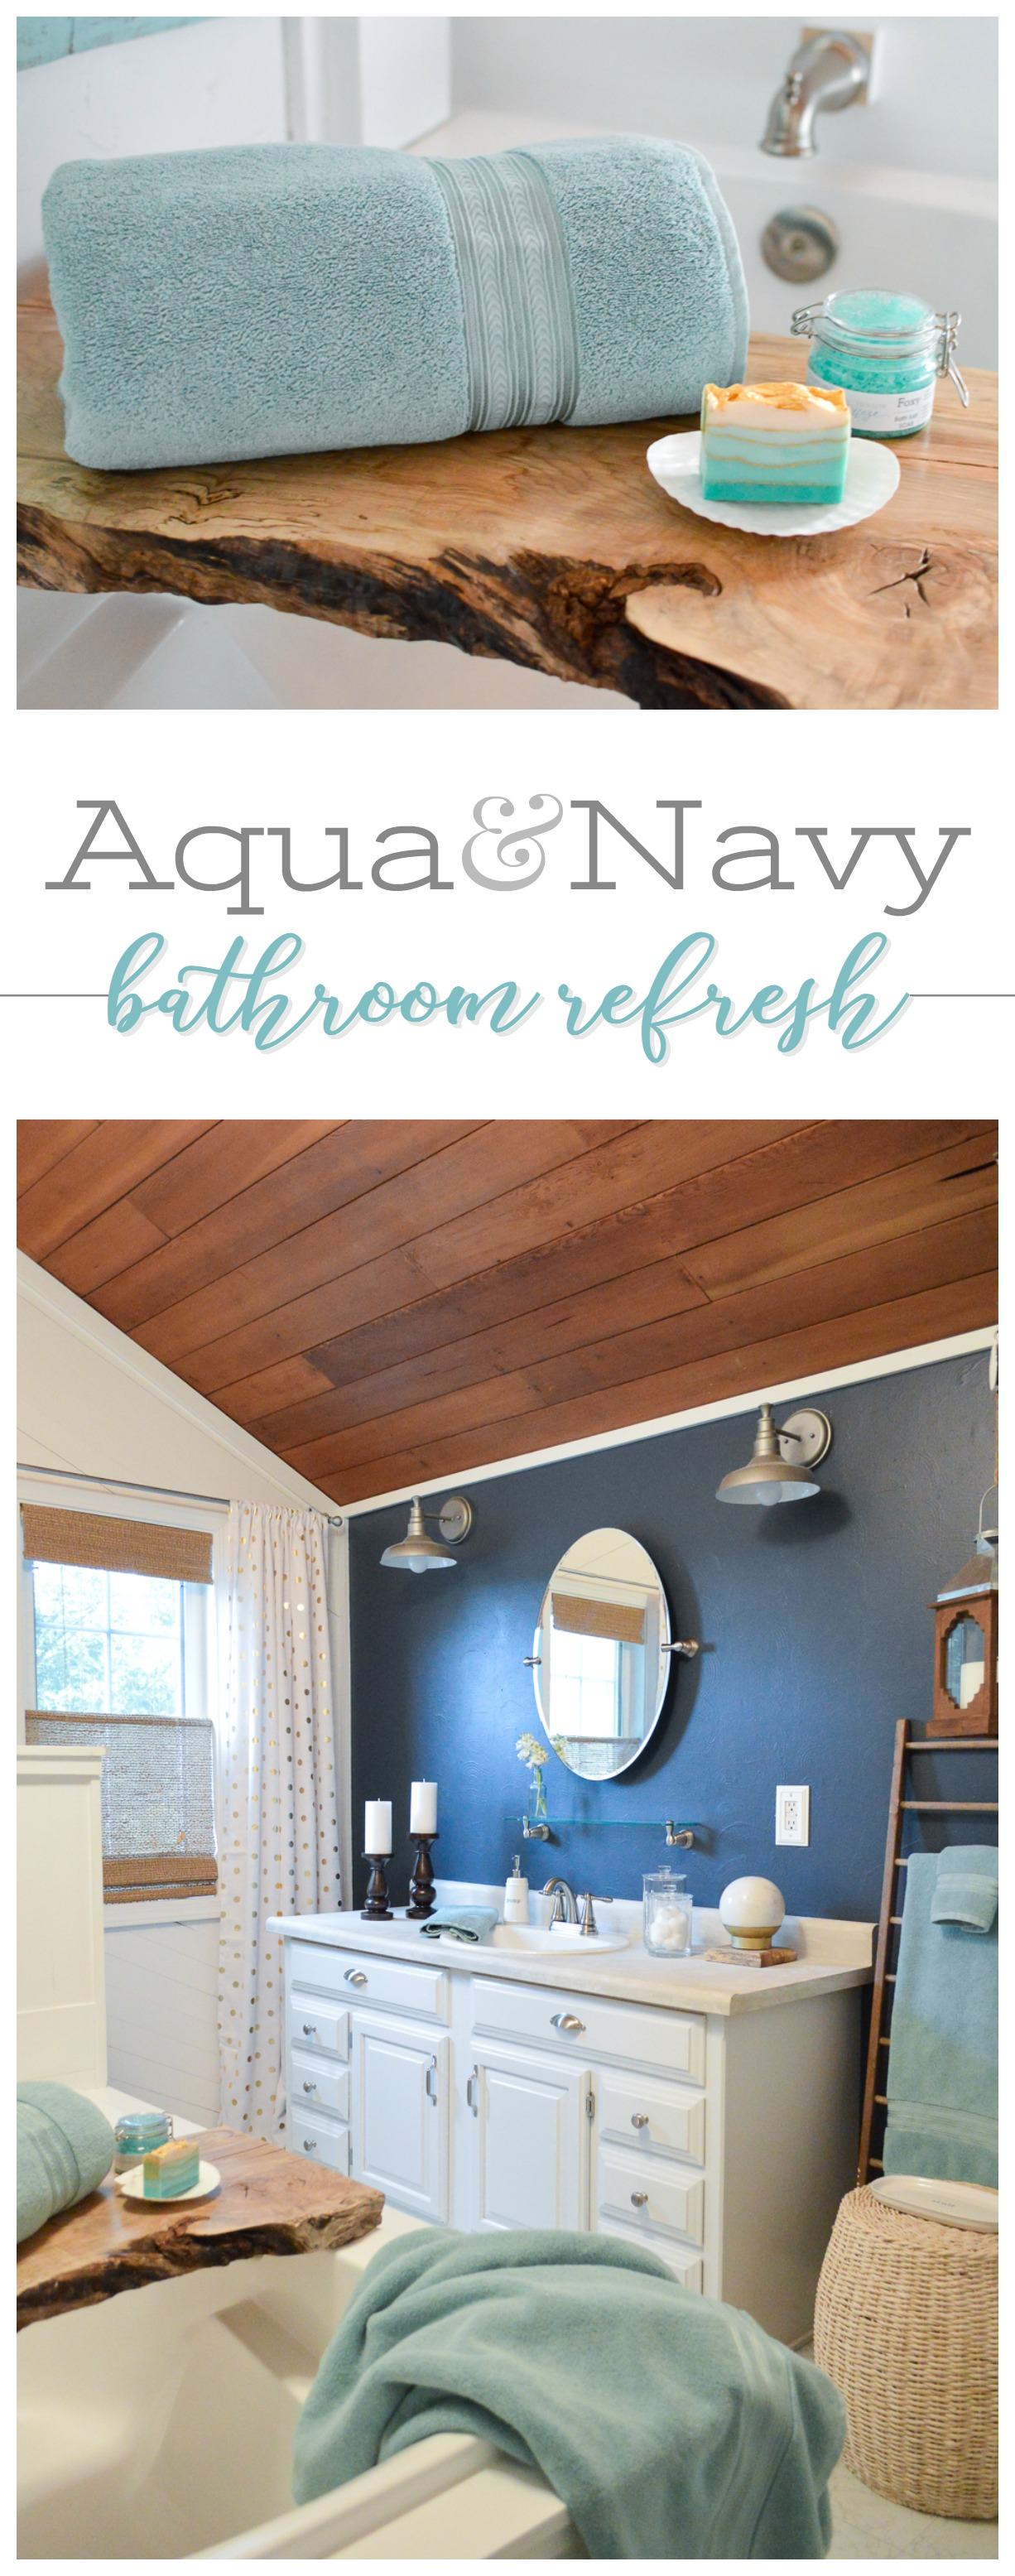 Aqua and Navy Bathroom Refresh - Mini Summer Makeover - Coastal Cottage Bath, Vaulted Planked Ceiling, Wood Walls, Boxed Shiplap Wrapped SoakingTub...